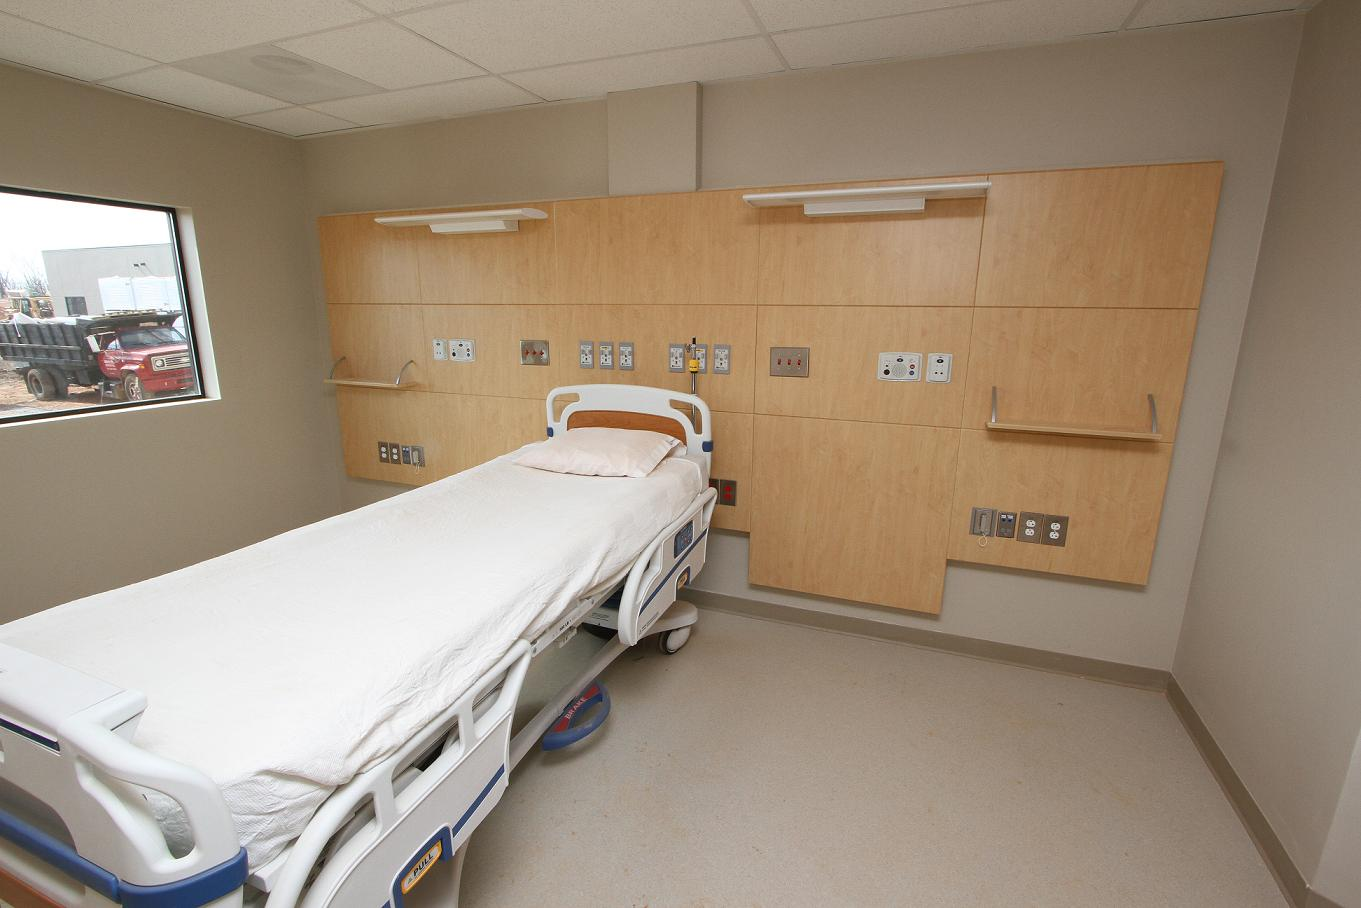 Nearly_completed_hospital_room